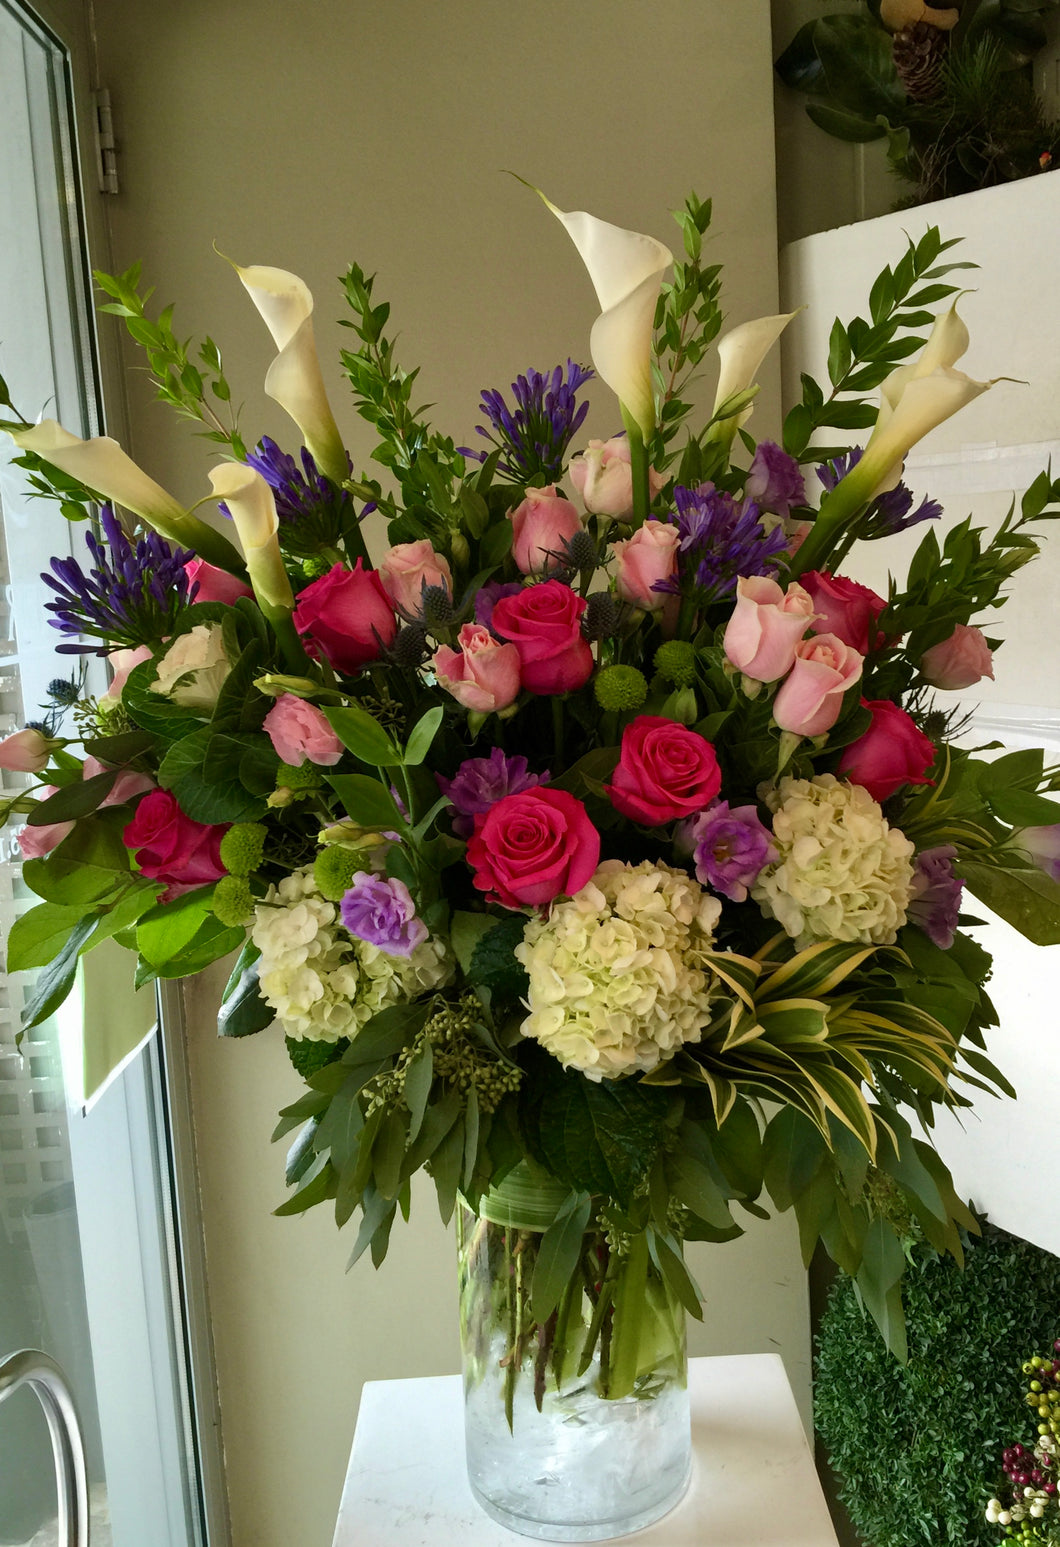 FNV83 - Pinks, Purples and White English Garden Vase Arrangement - Flowerplustoronto